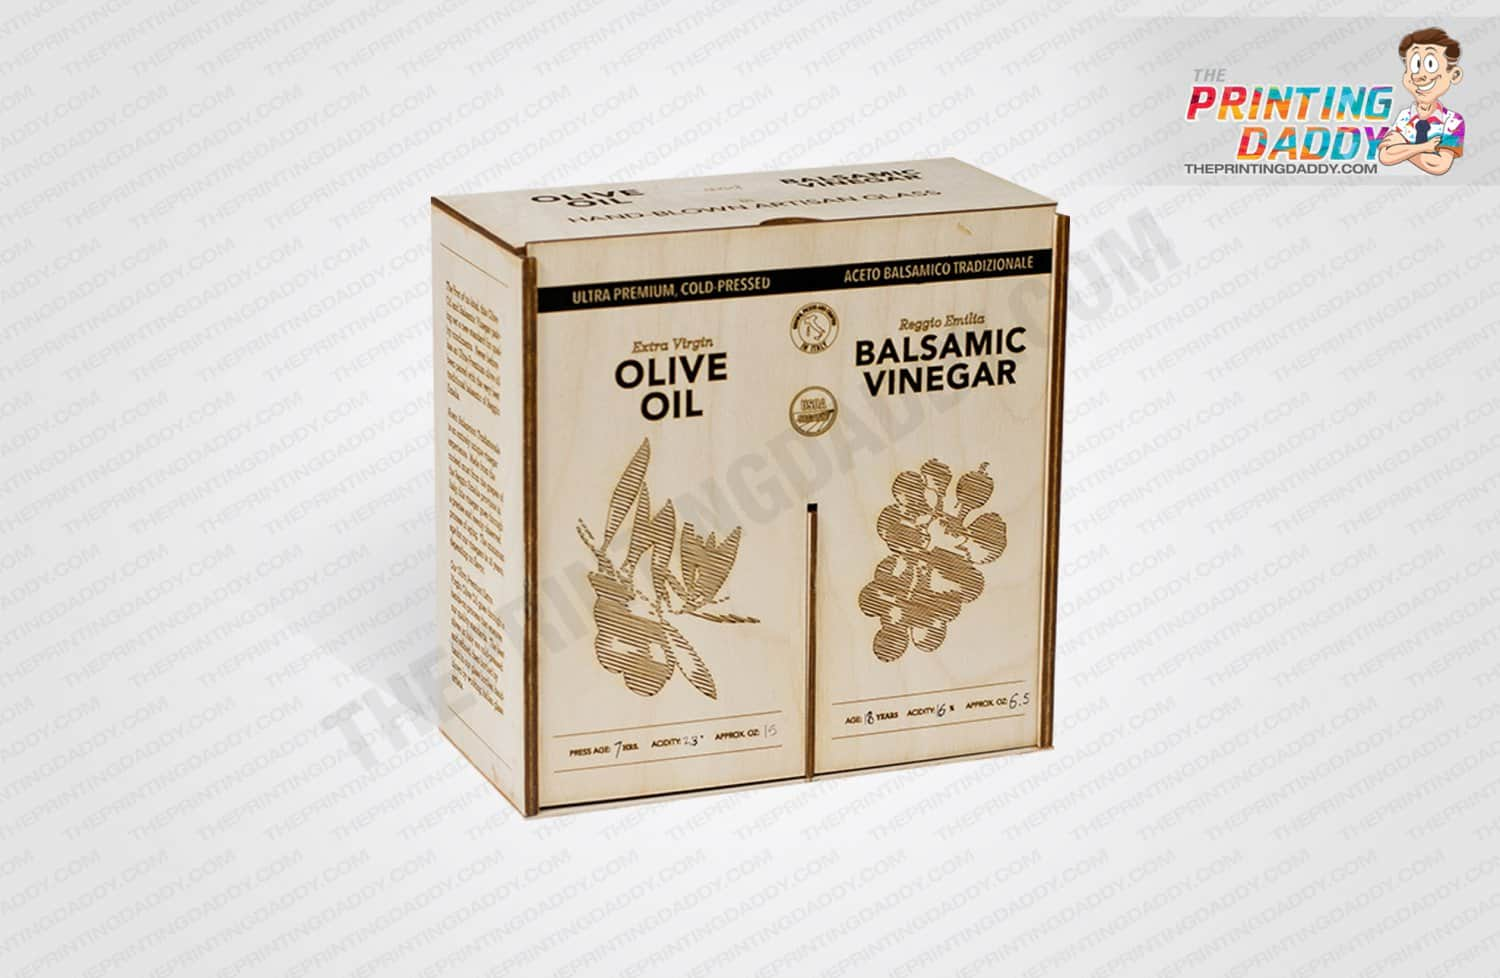 Olive Oil Packaging Boxes The Printing Daddy